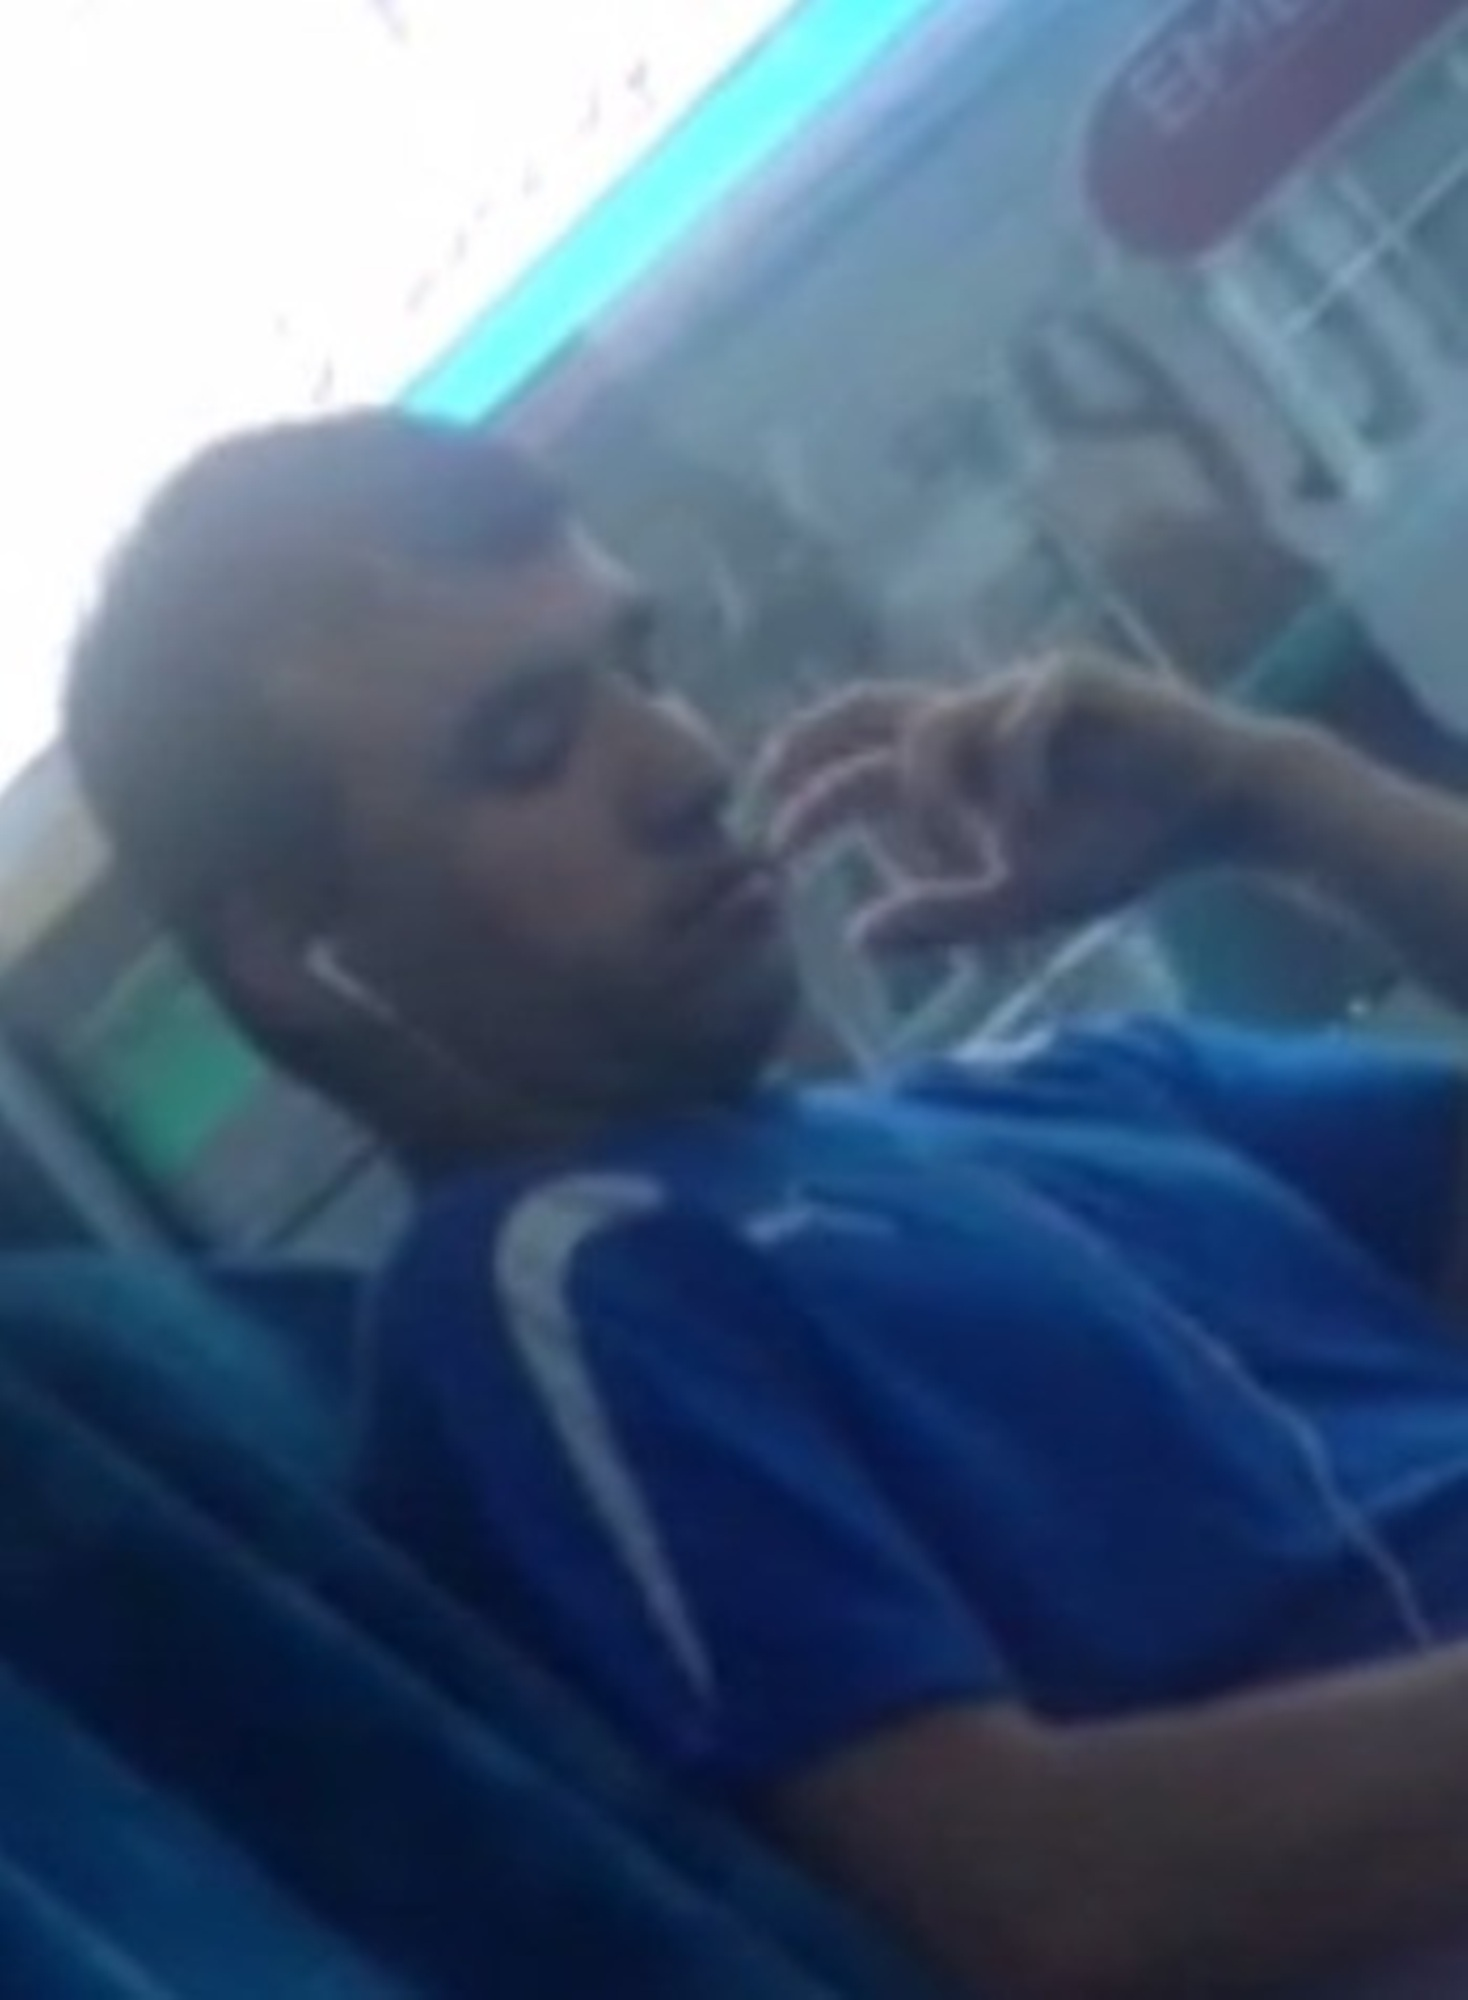 Woman 'distressed' by this man on bus